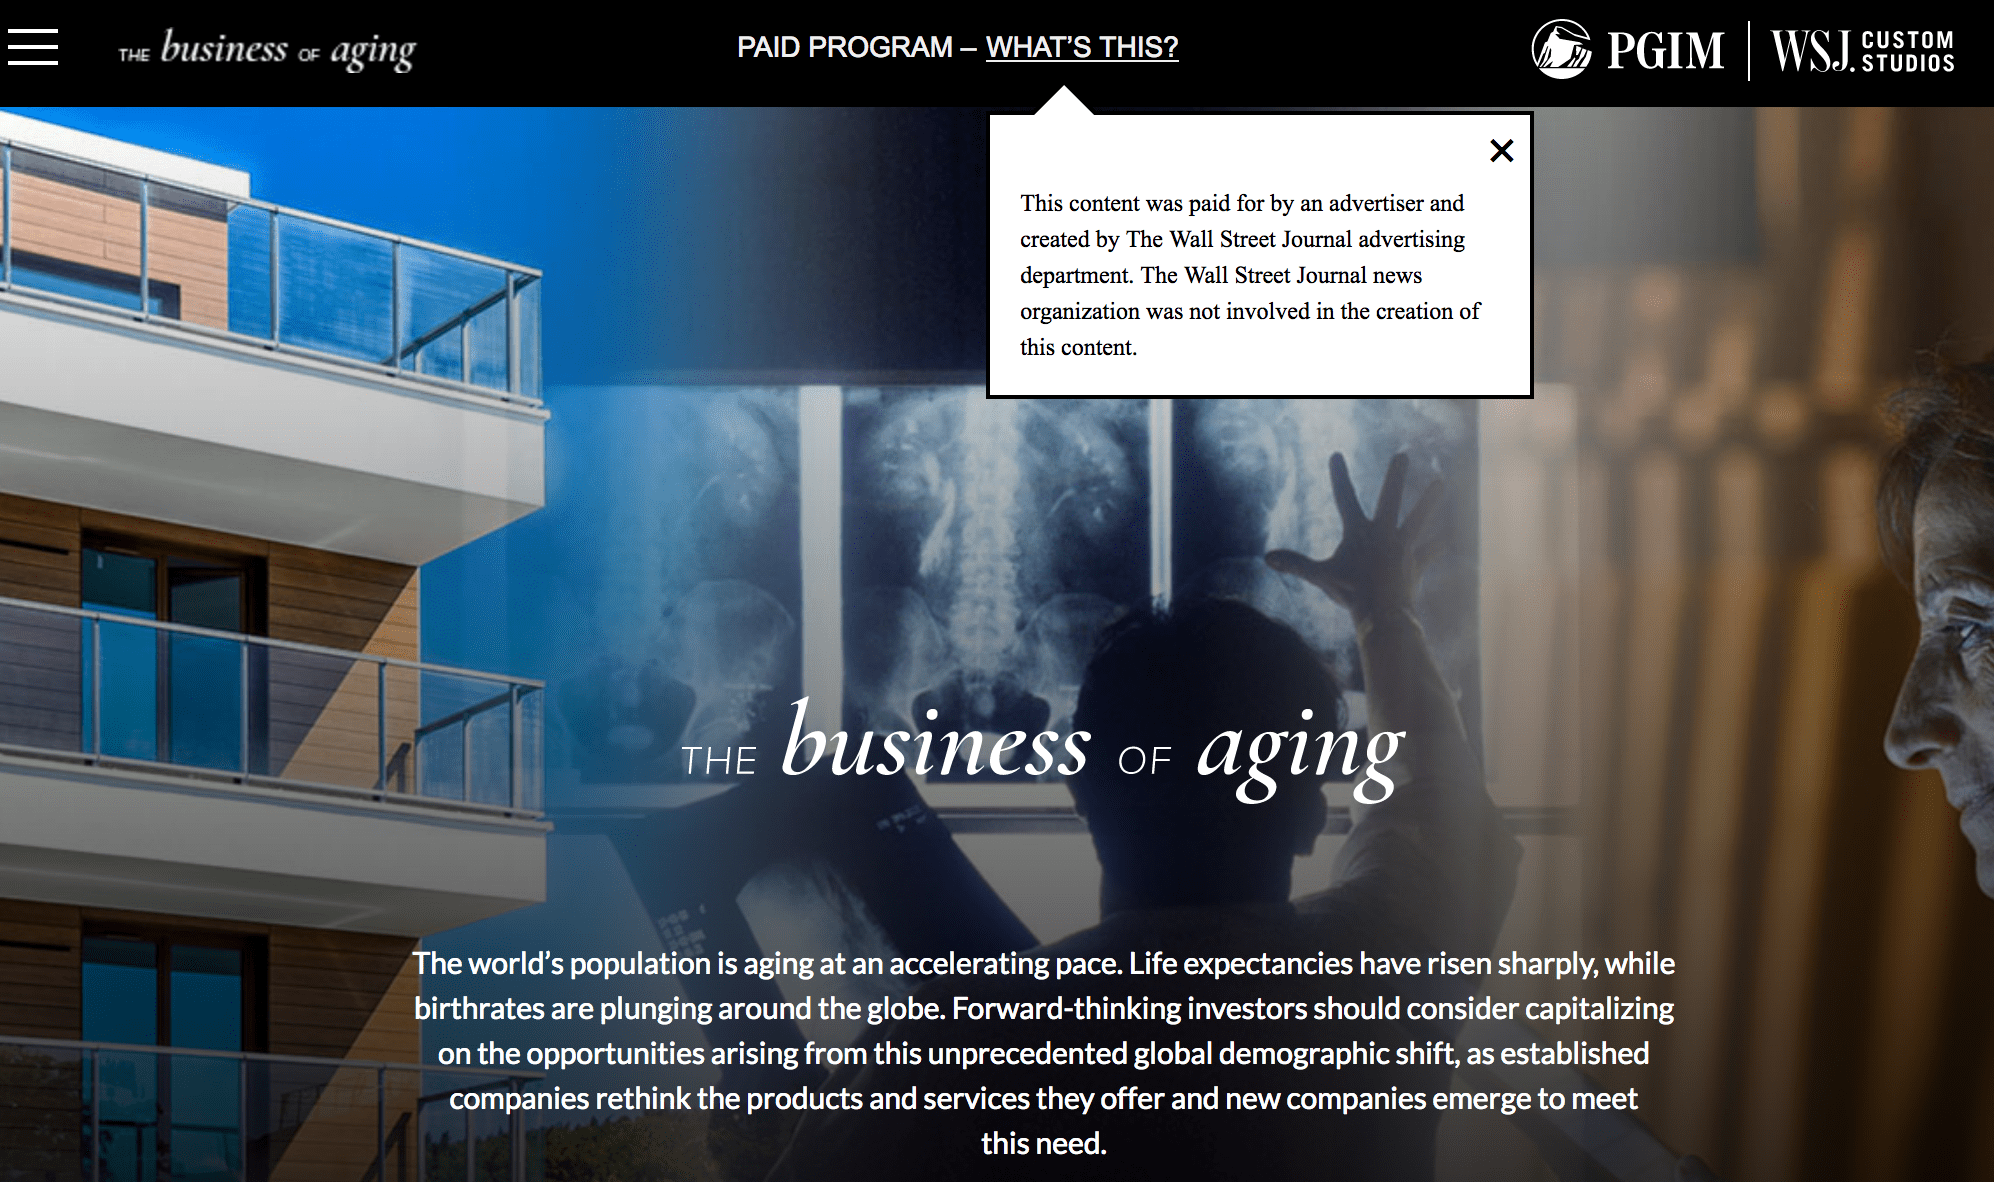 """UnaliWear Mentioned in the Wall Street Journal (WSJ) in: """"The Business of Aging"""""""